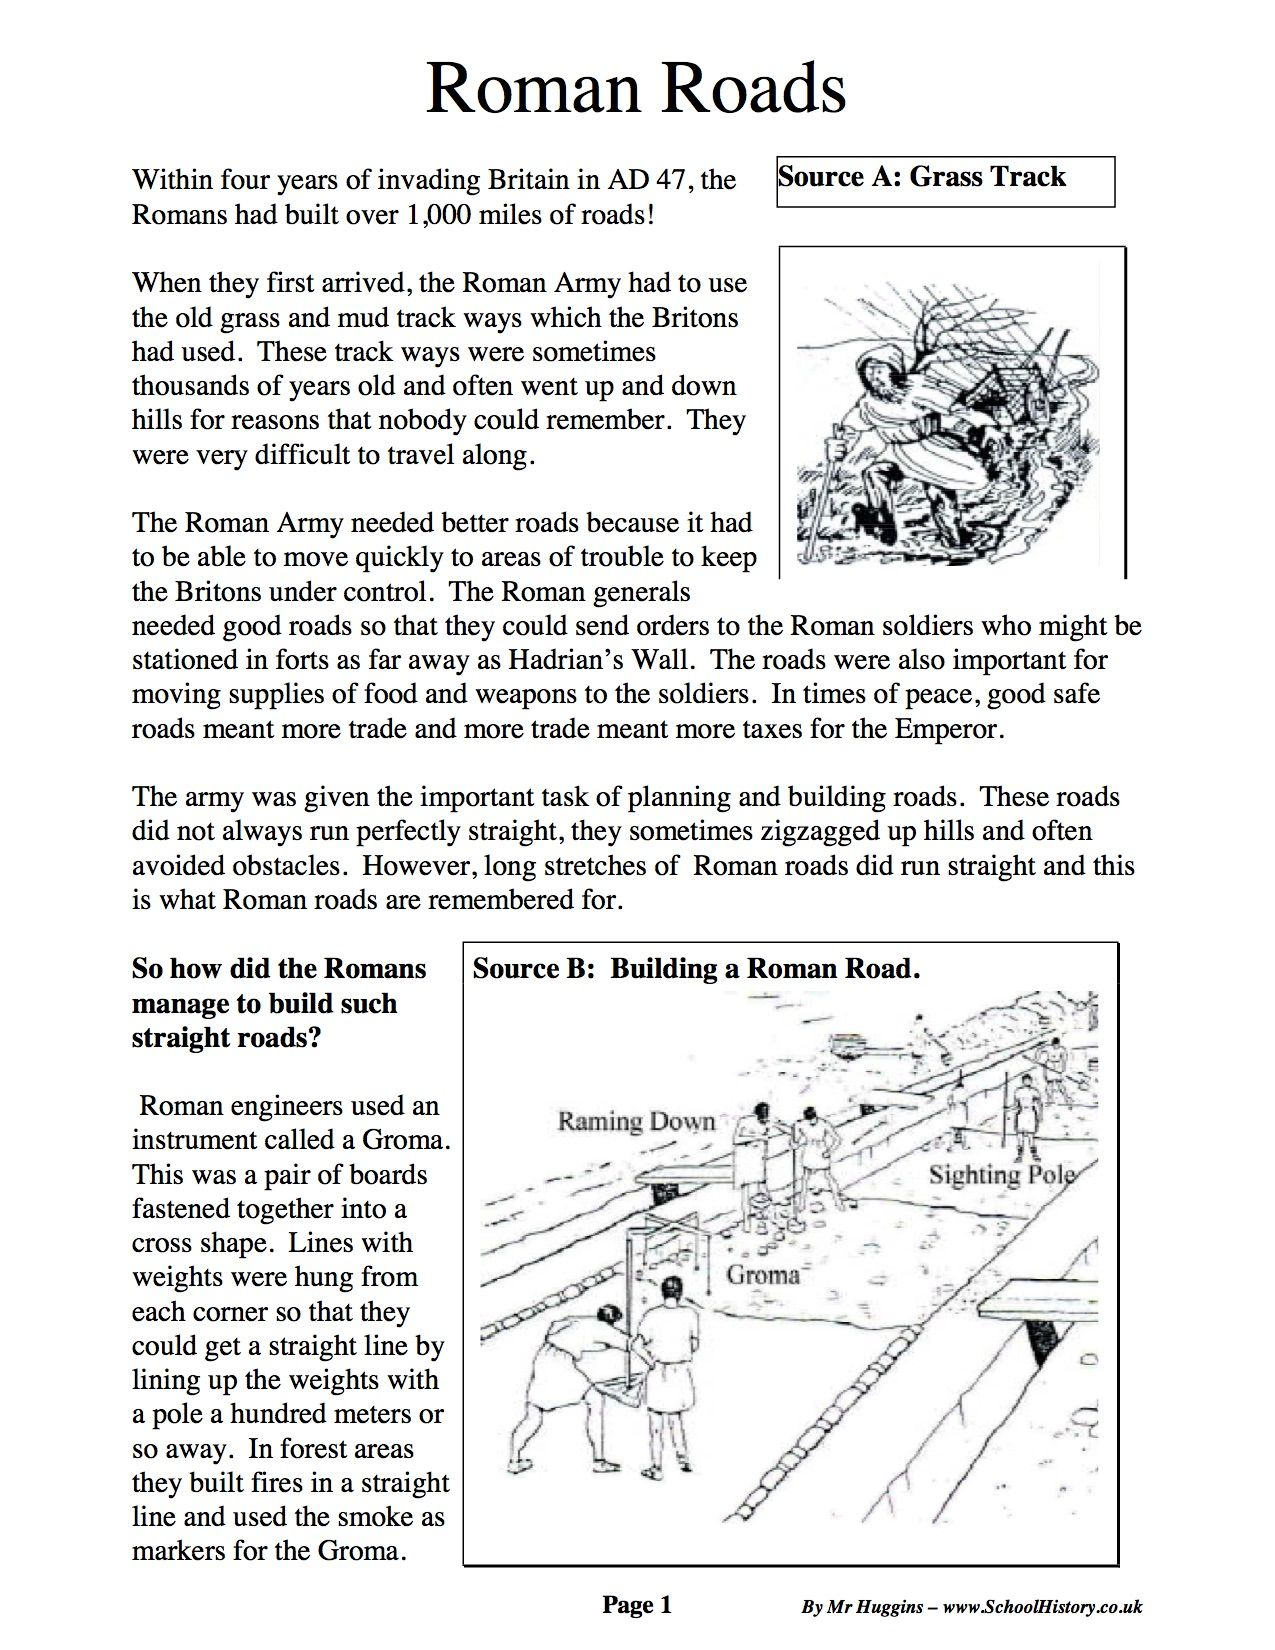 Worksheets Roman Empire Worksheet roman empire military timeline yahoo image search results results